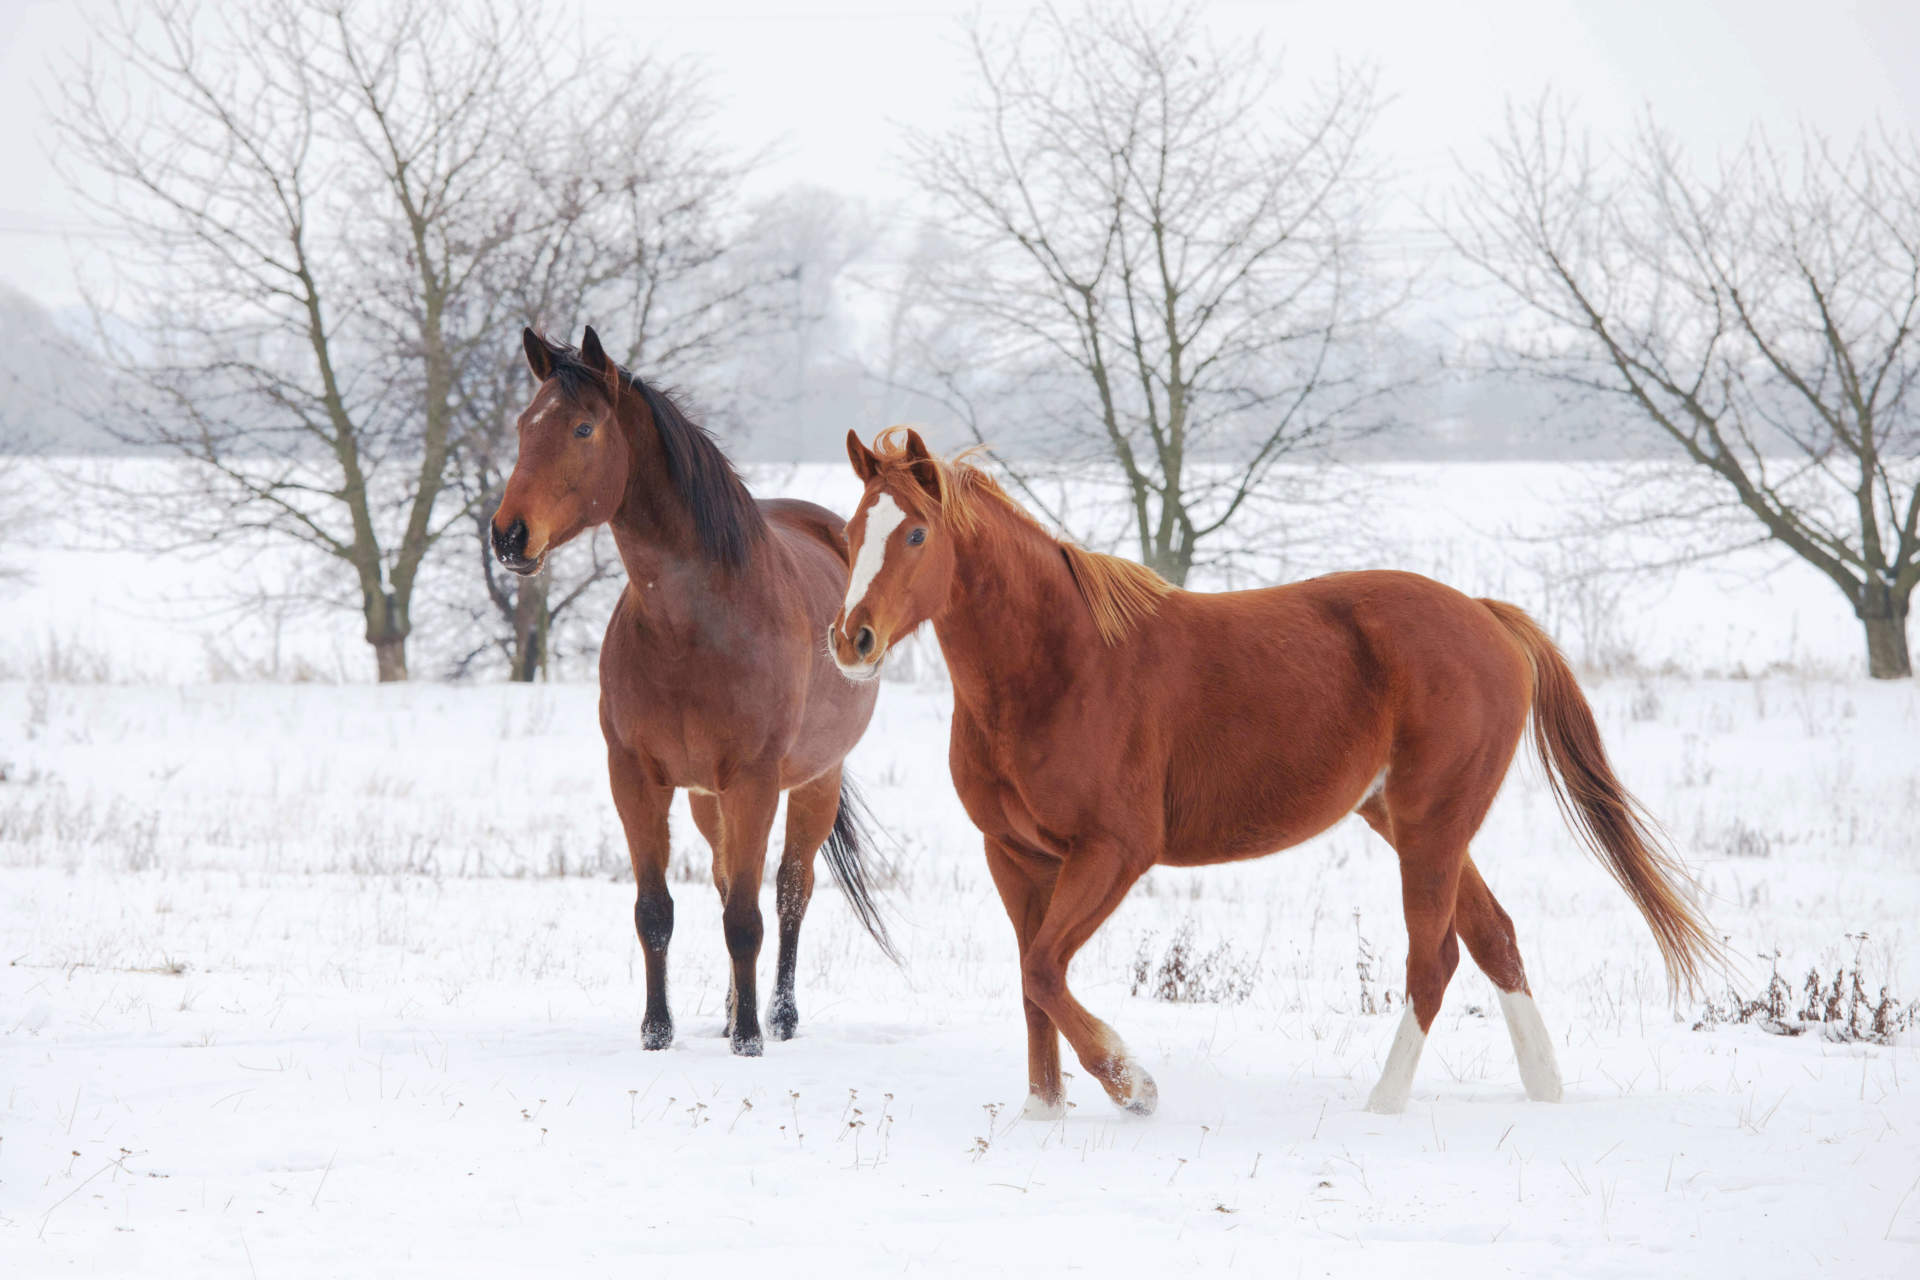 Blanketing - Don't Let Your Horse Be Left Out in the Cold